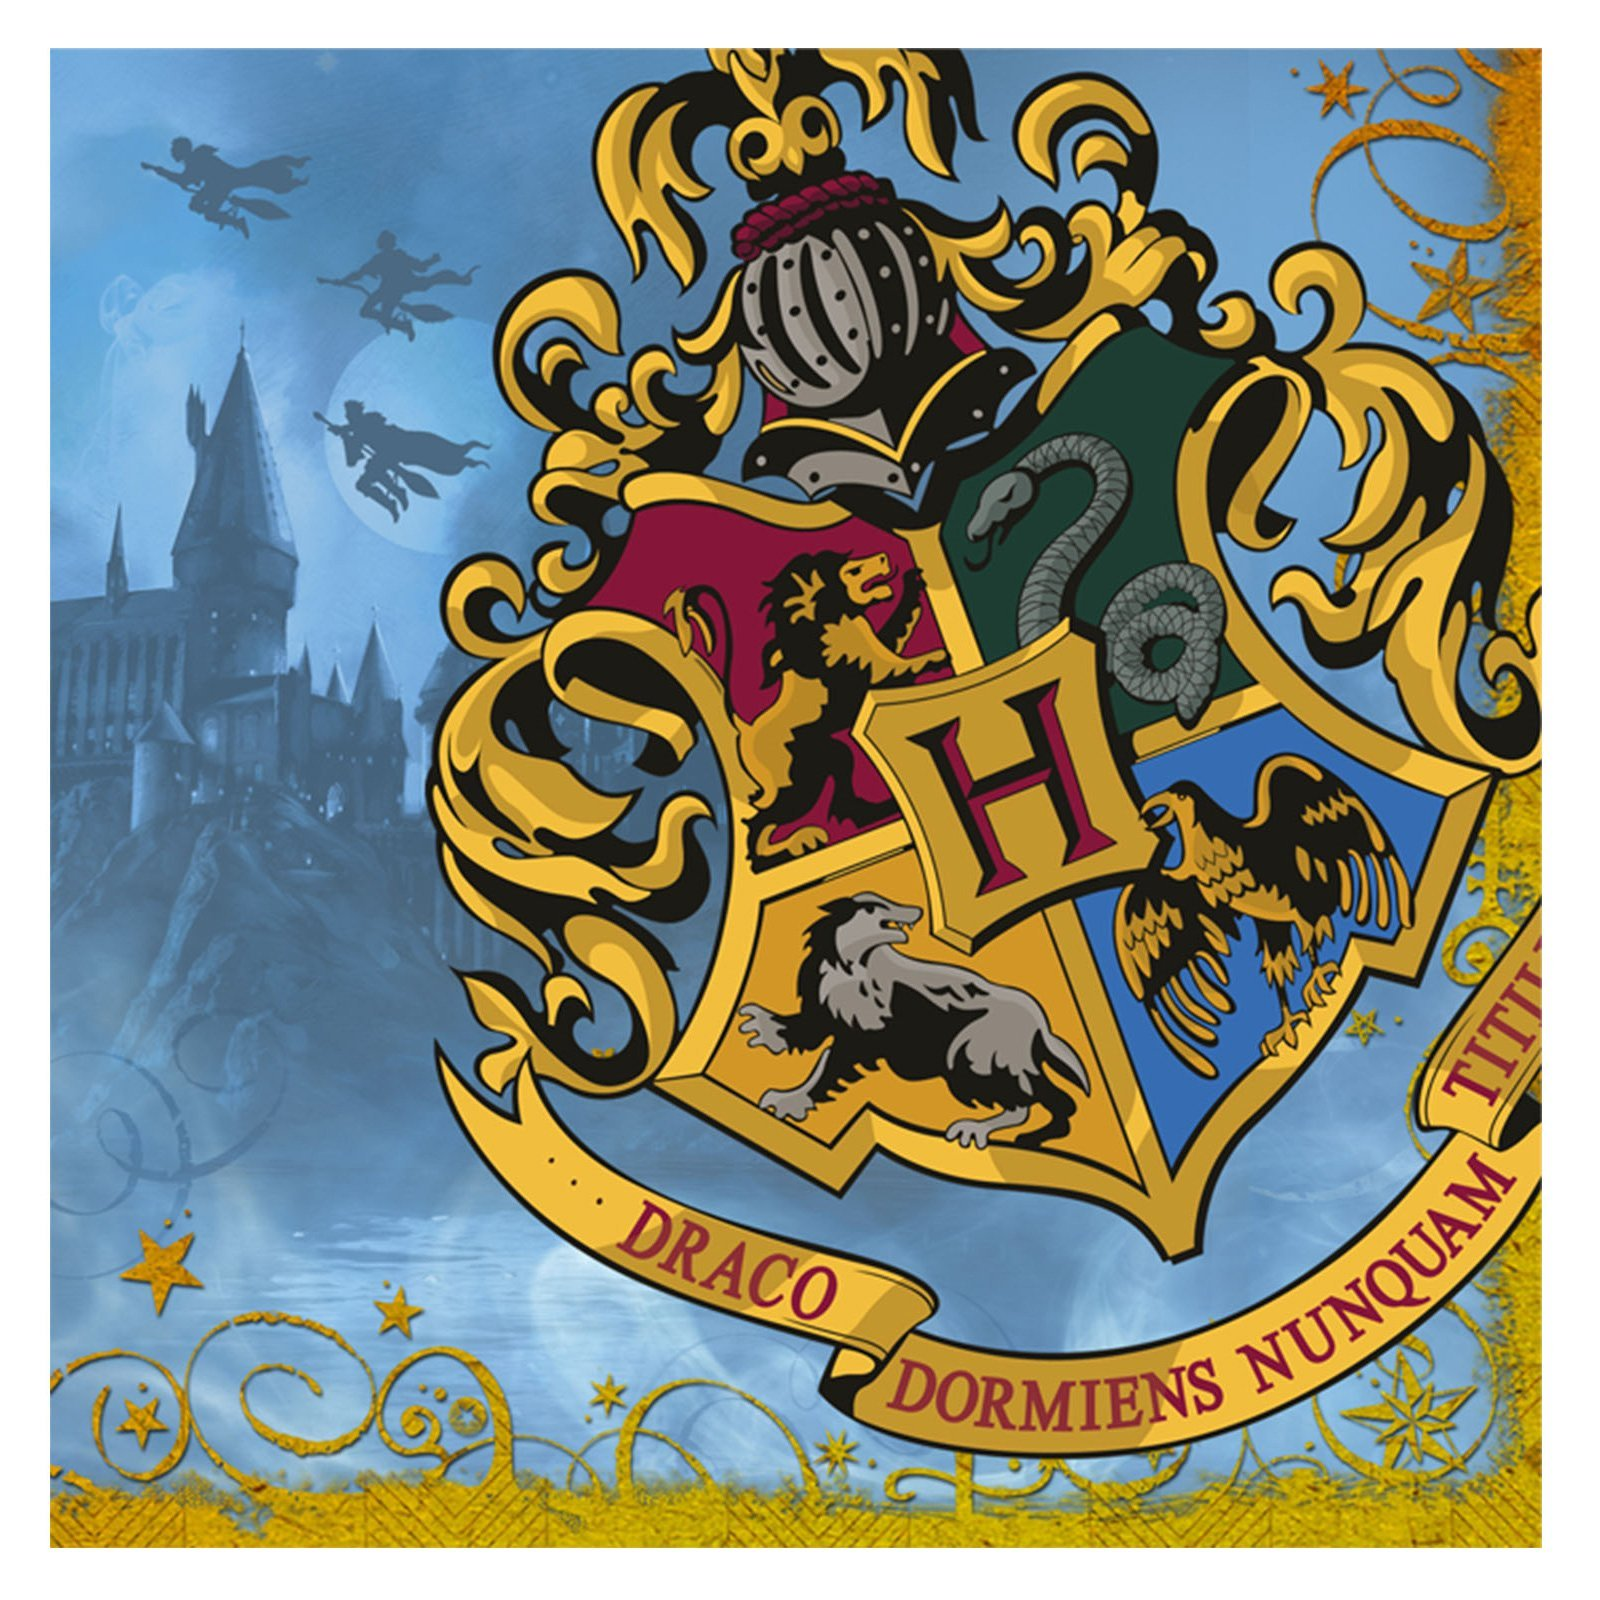 Harry Potter 'Deathly Hallows' Large Napkins (16ct)